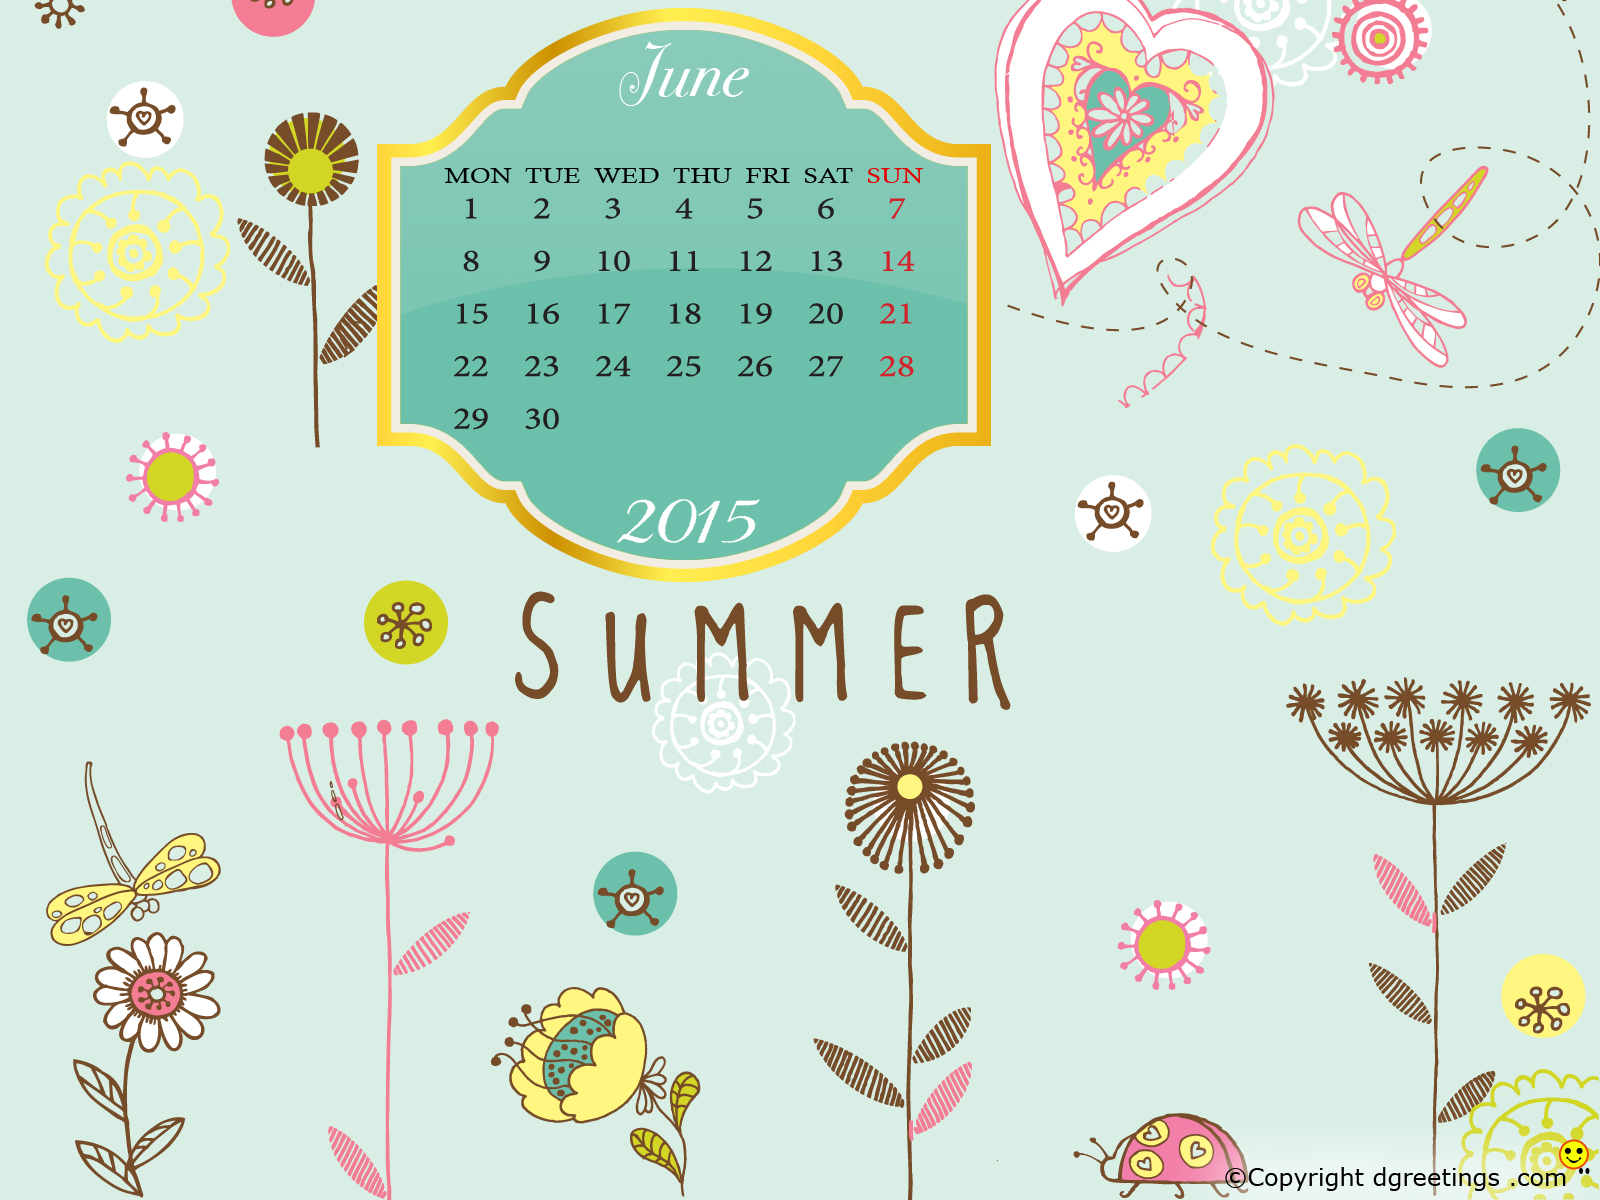 June Calendar wallpapersdgreetingscom 1600x1200